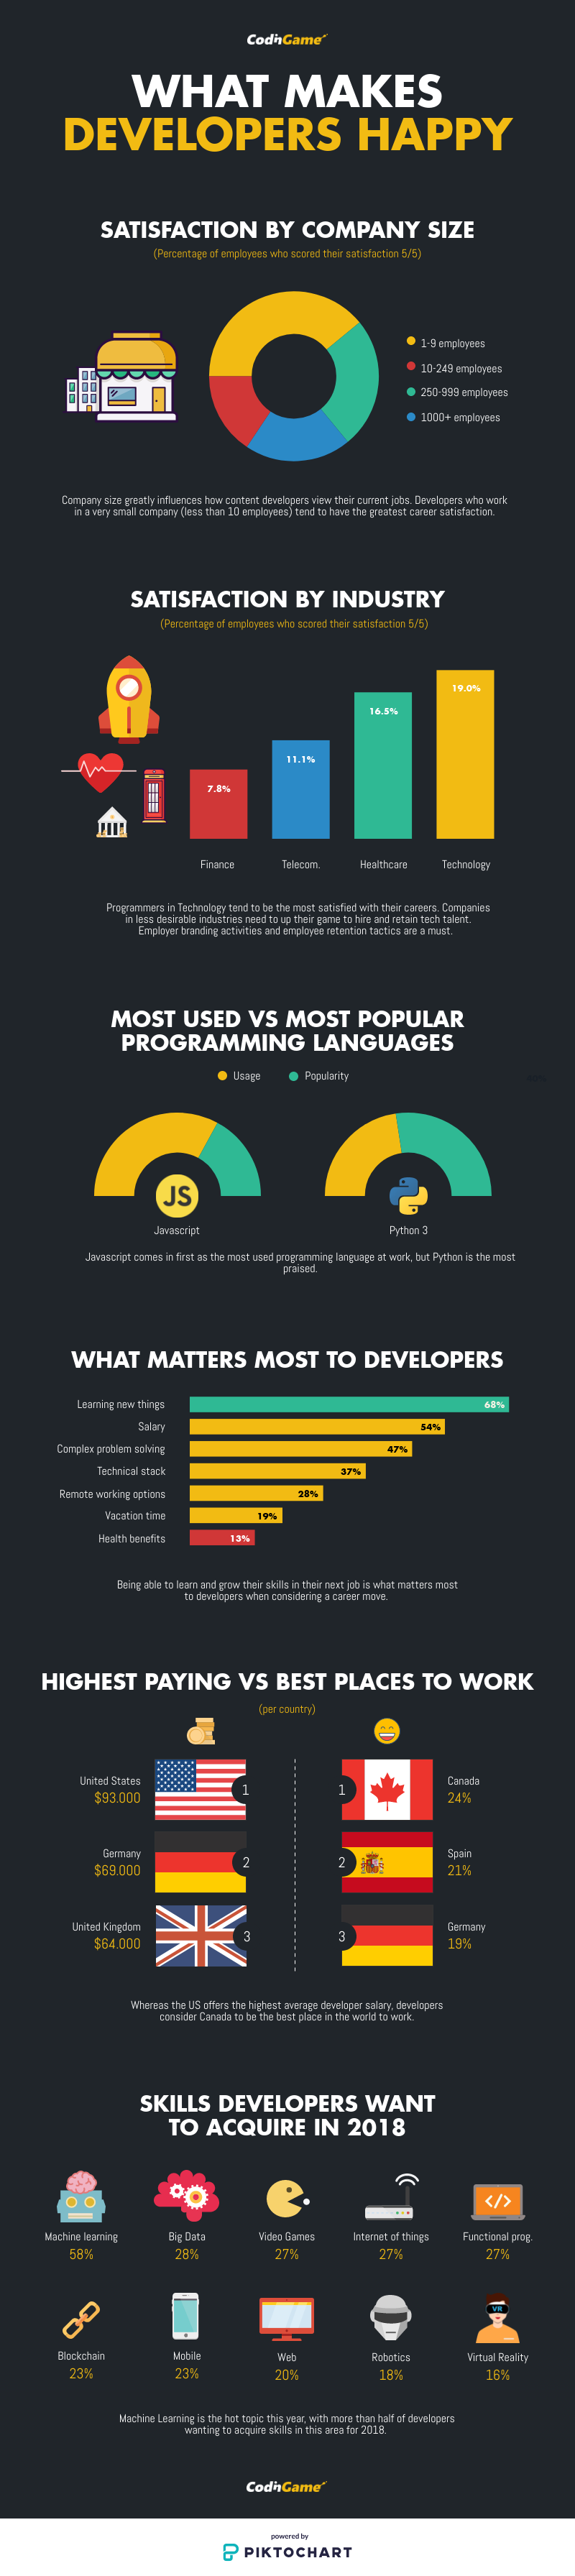 Some key findings on what makes developers happy